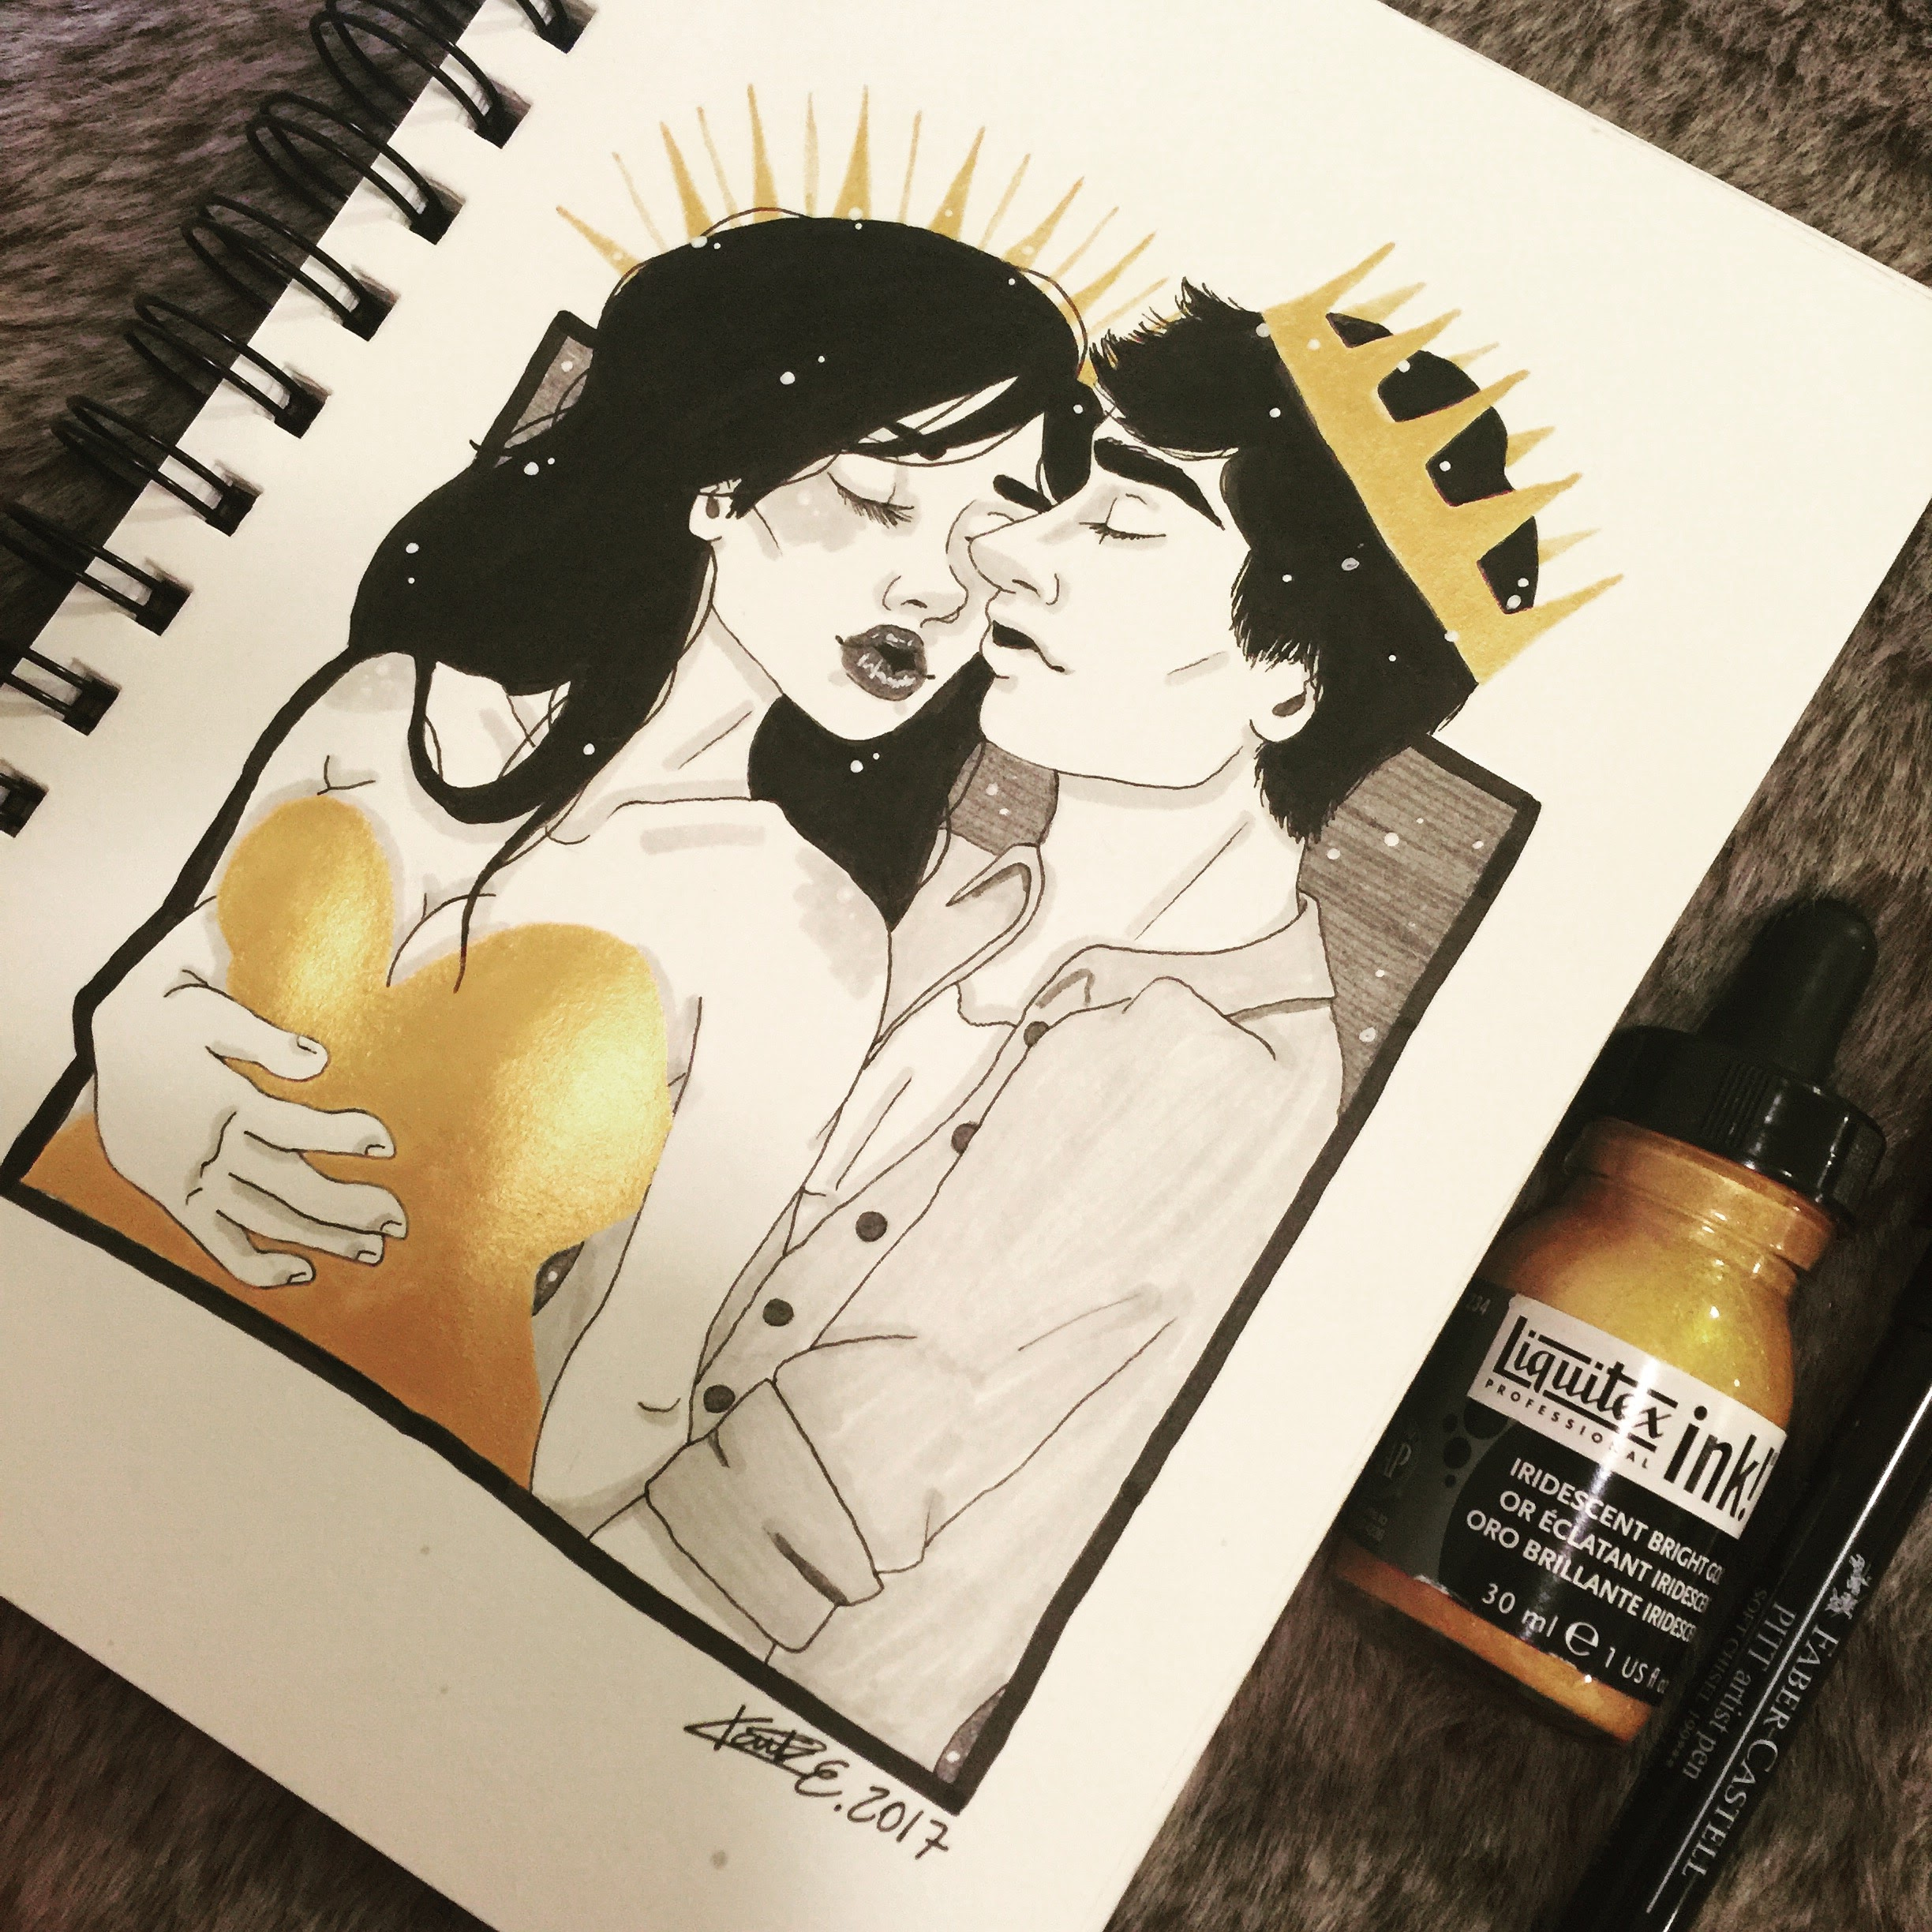 Day 21: The Sun and Her Consort